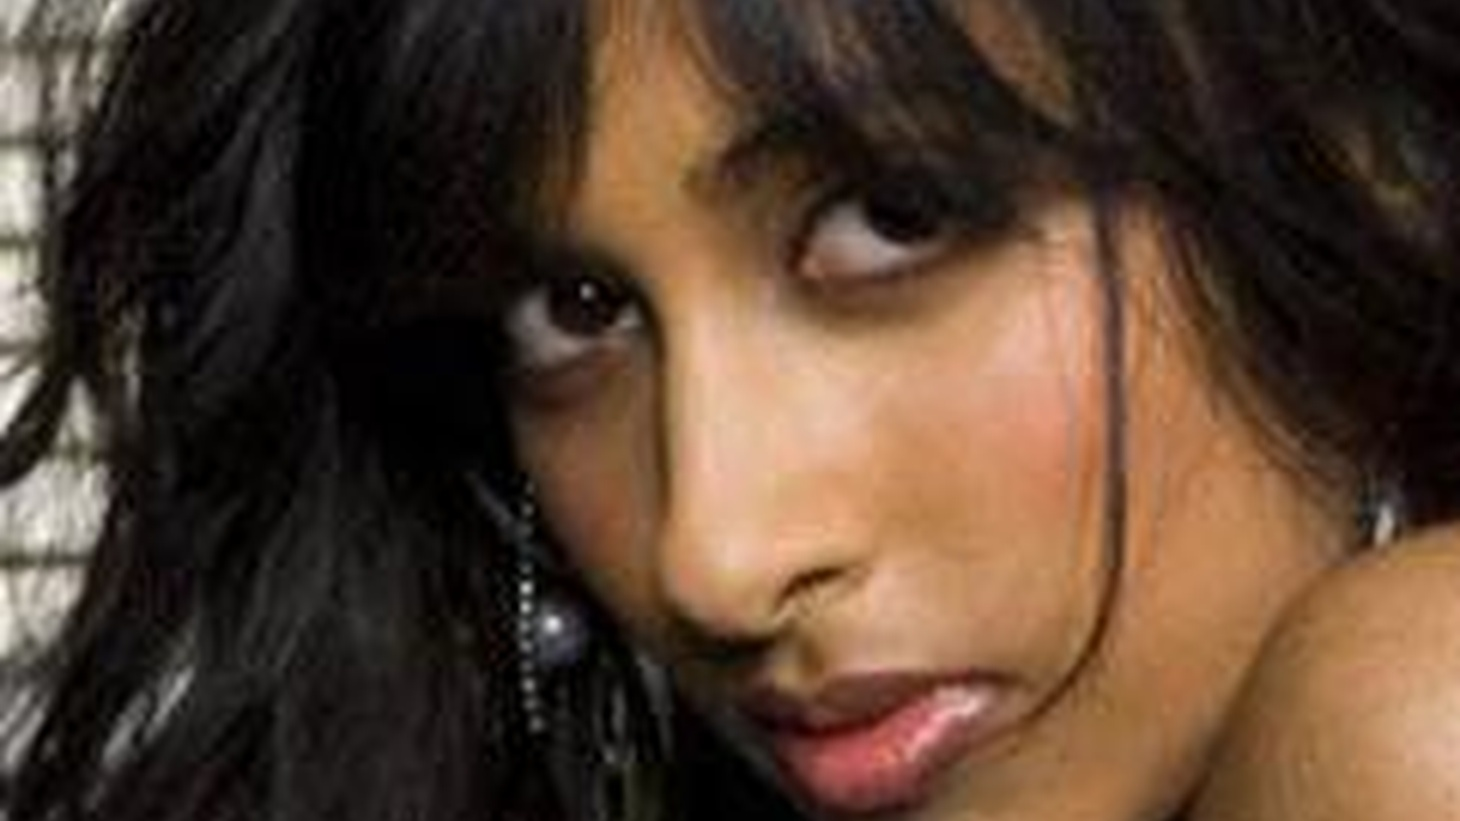 Seductive newcomer Anjulie blends a 60's vibe with catchy melodies and lyrics. Today's Top Tune preceeds her forthcoming debut, the song is Boom.